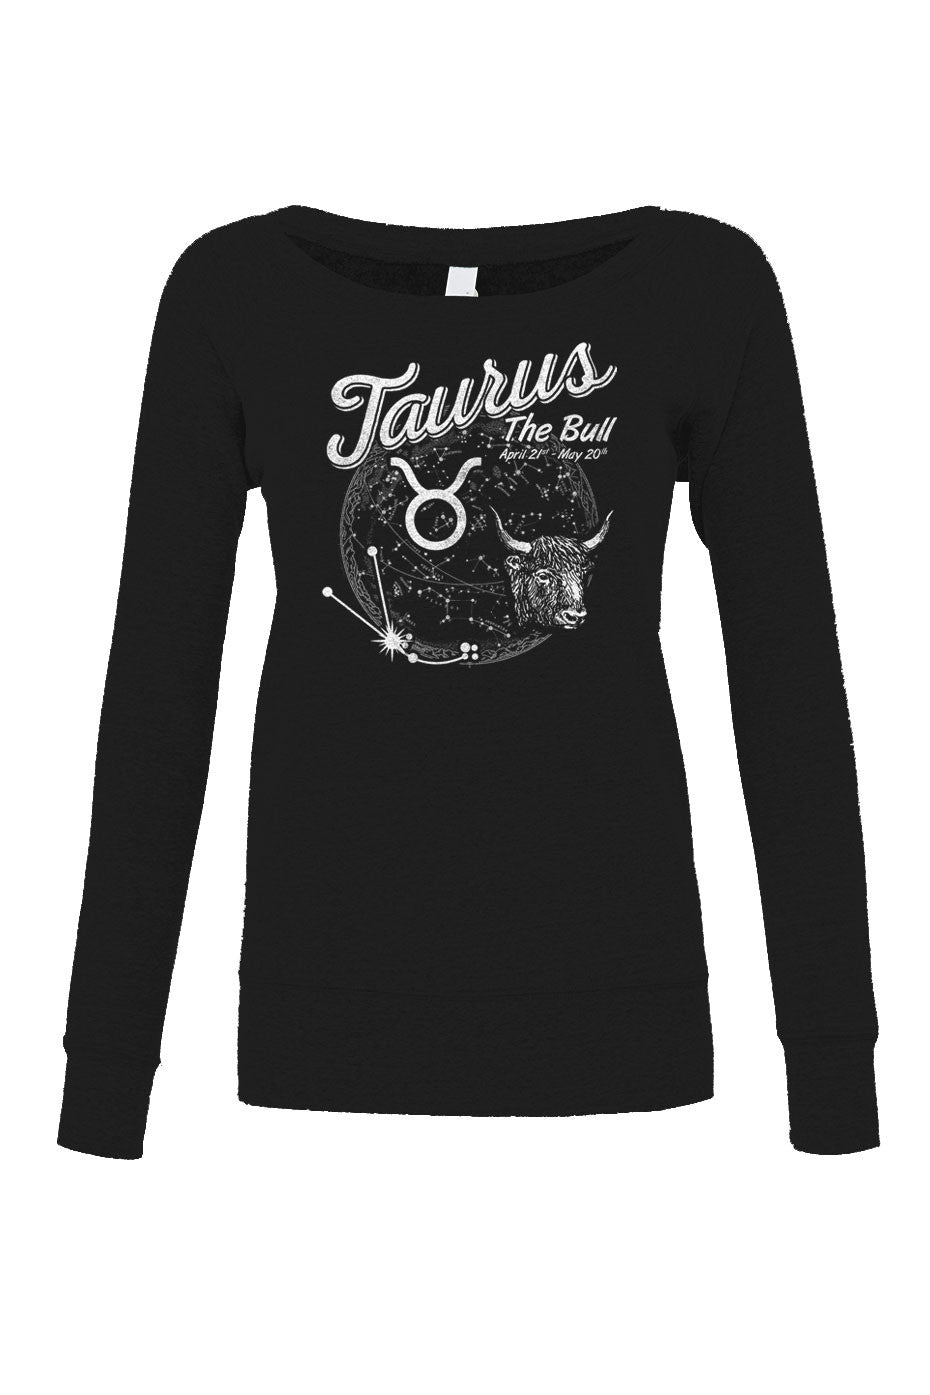 Women's Vintage Taurus Scoop Neck Fleece - Juniors Fit